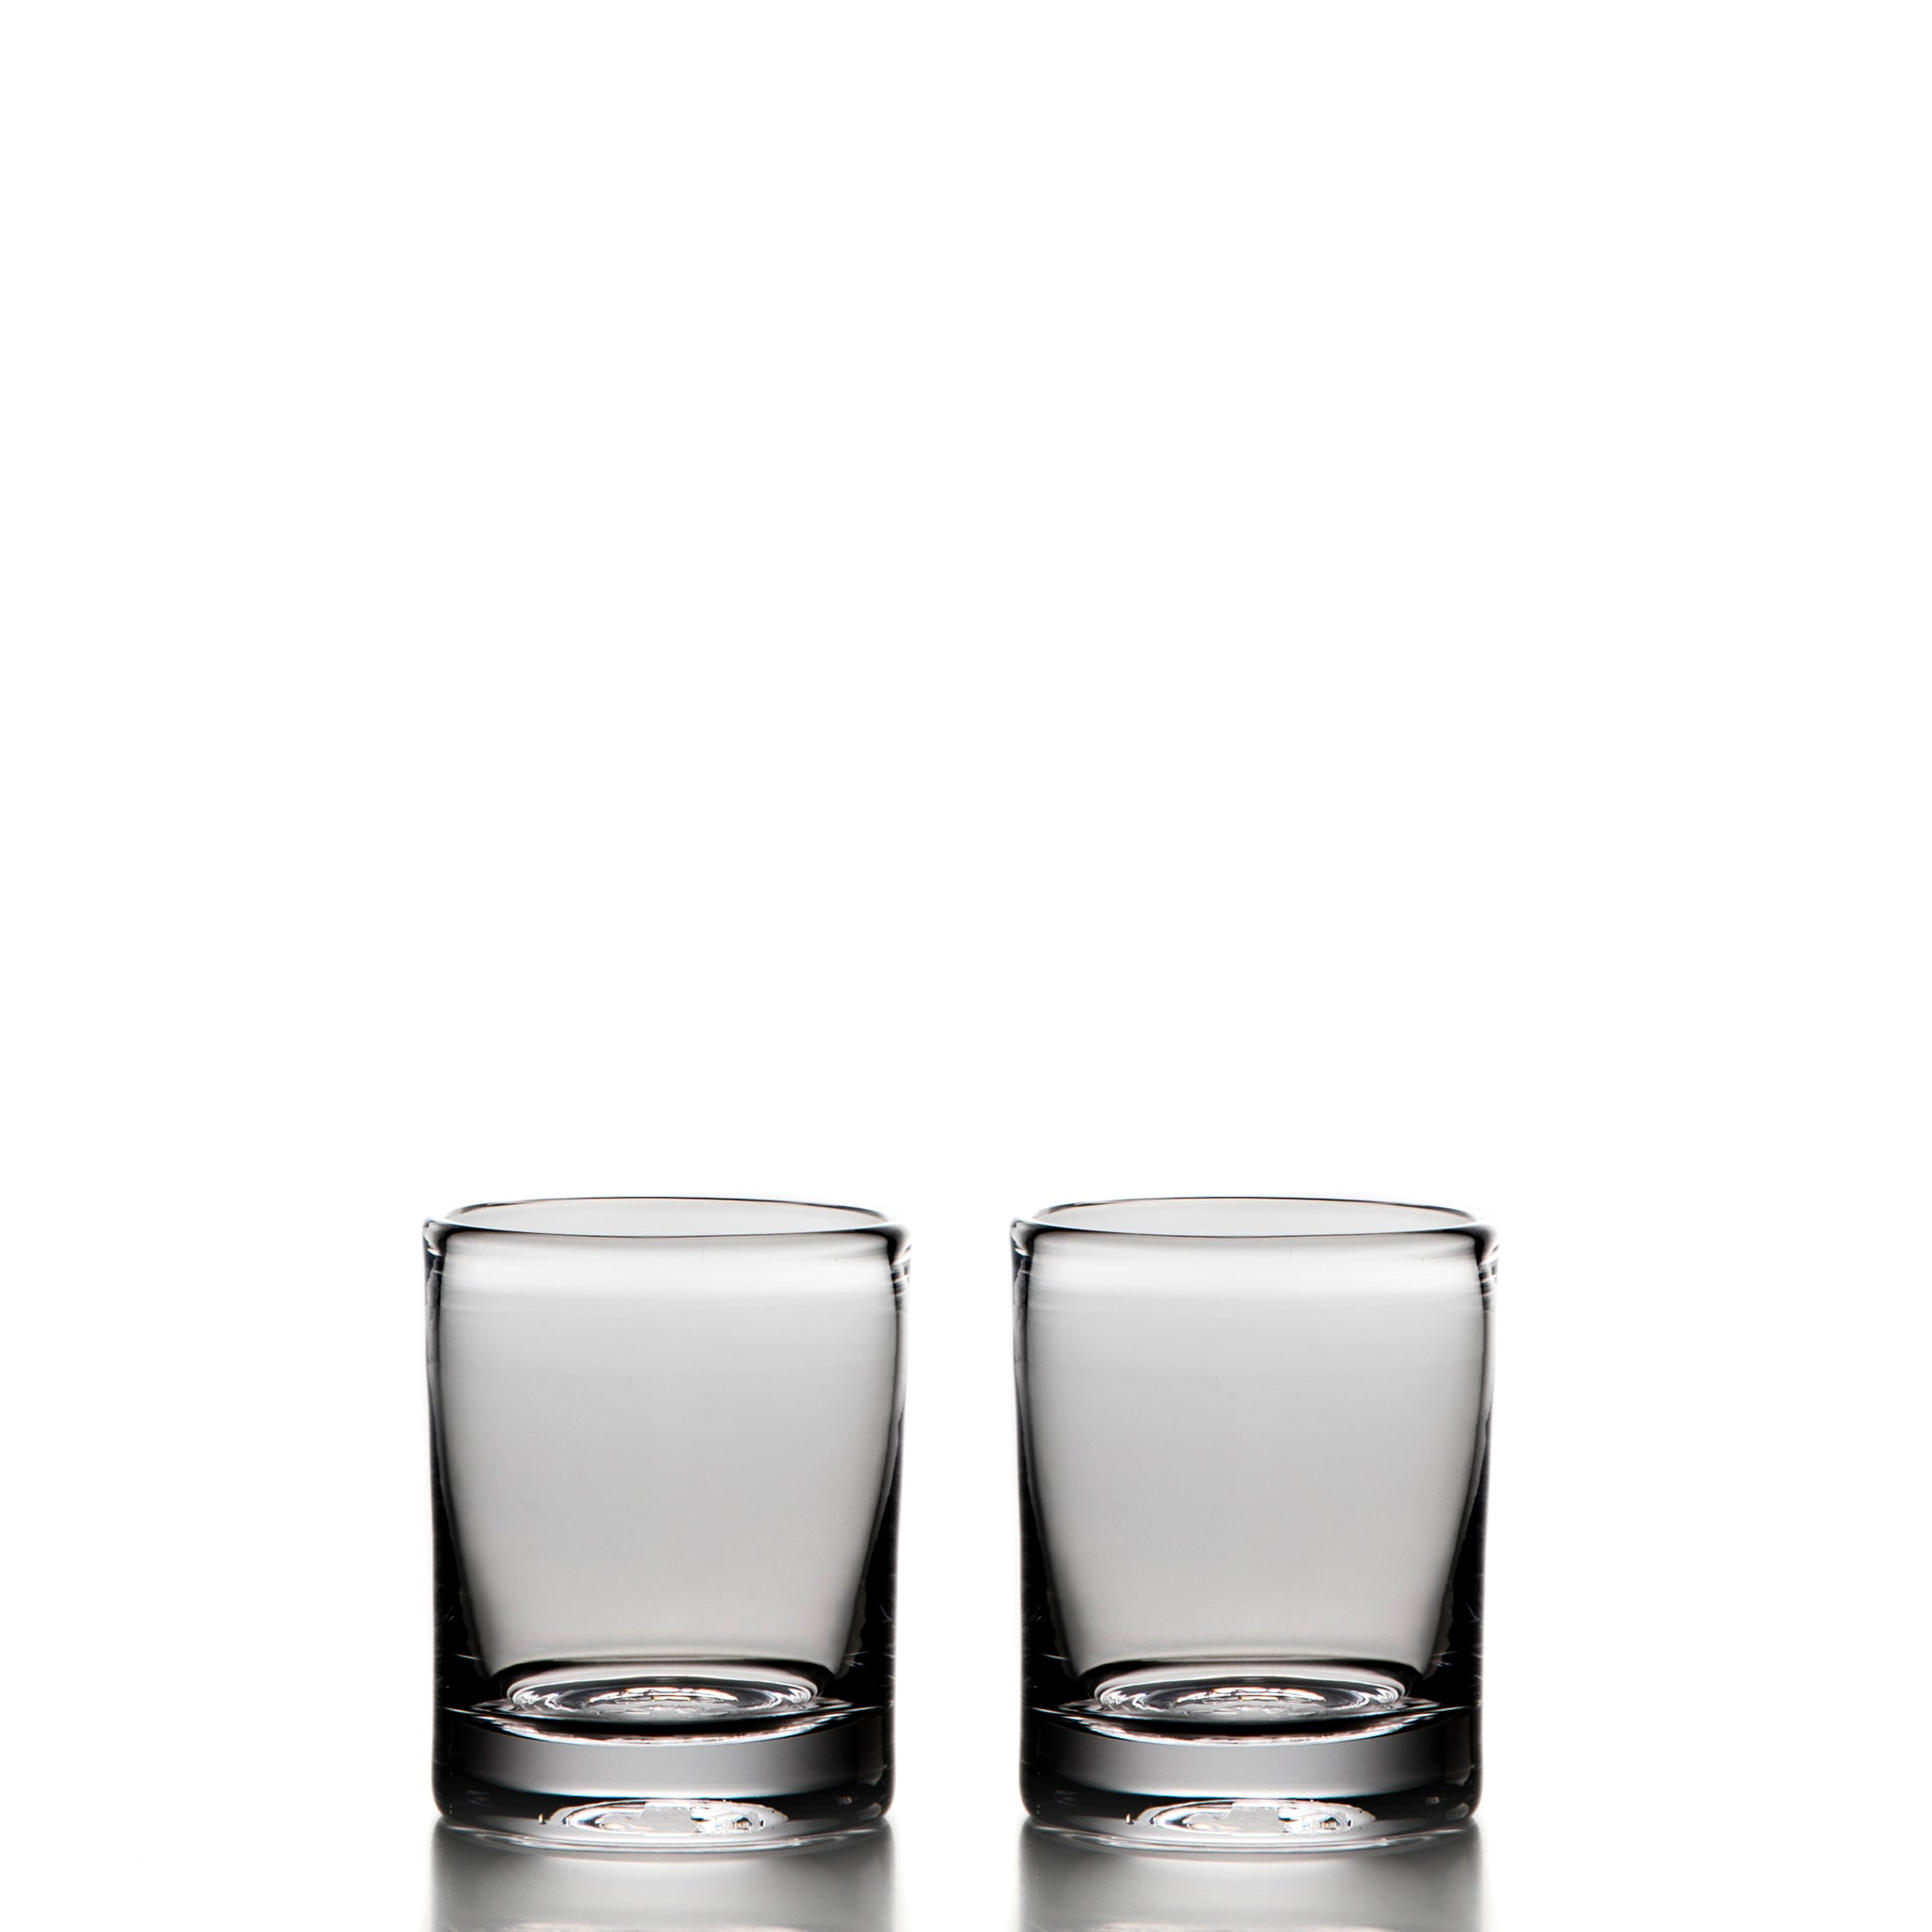 Ascutney Whiskey Glasses in a Gift Box - Set of 2